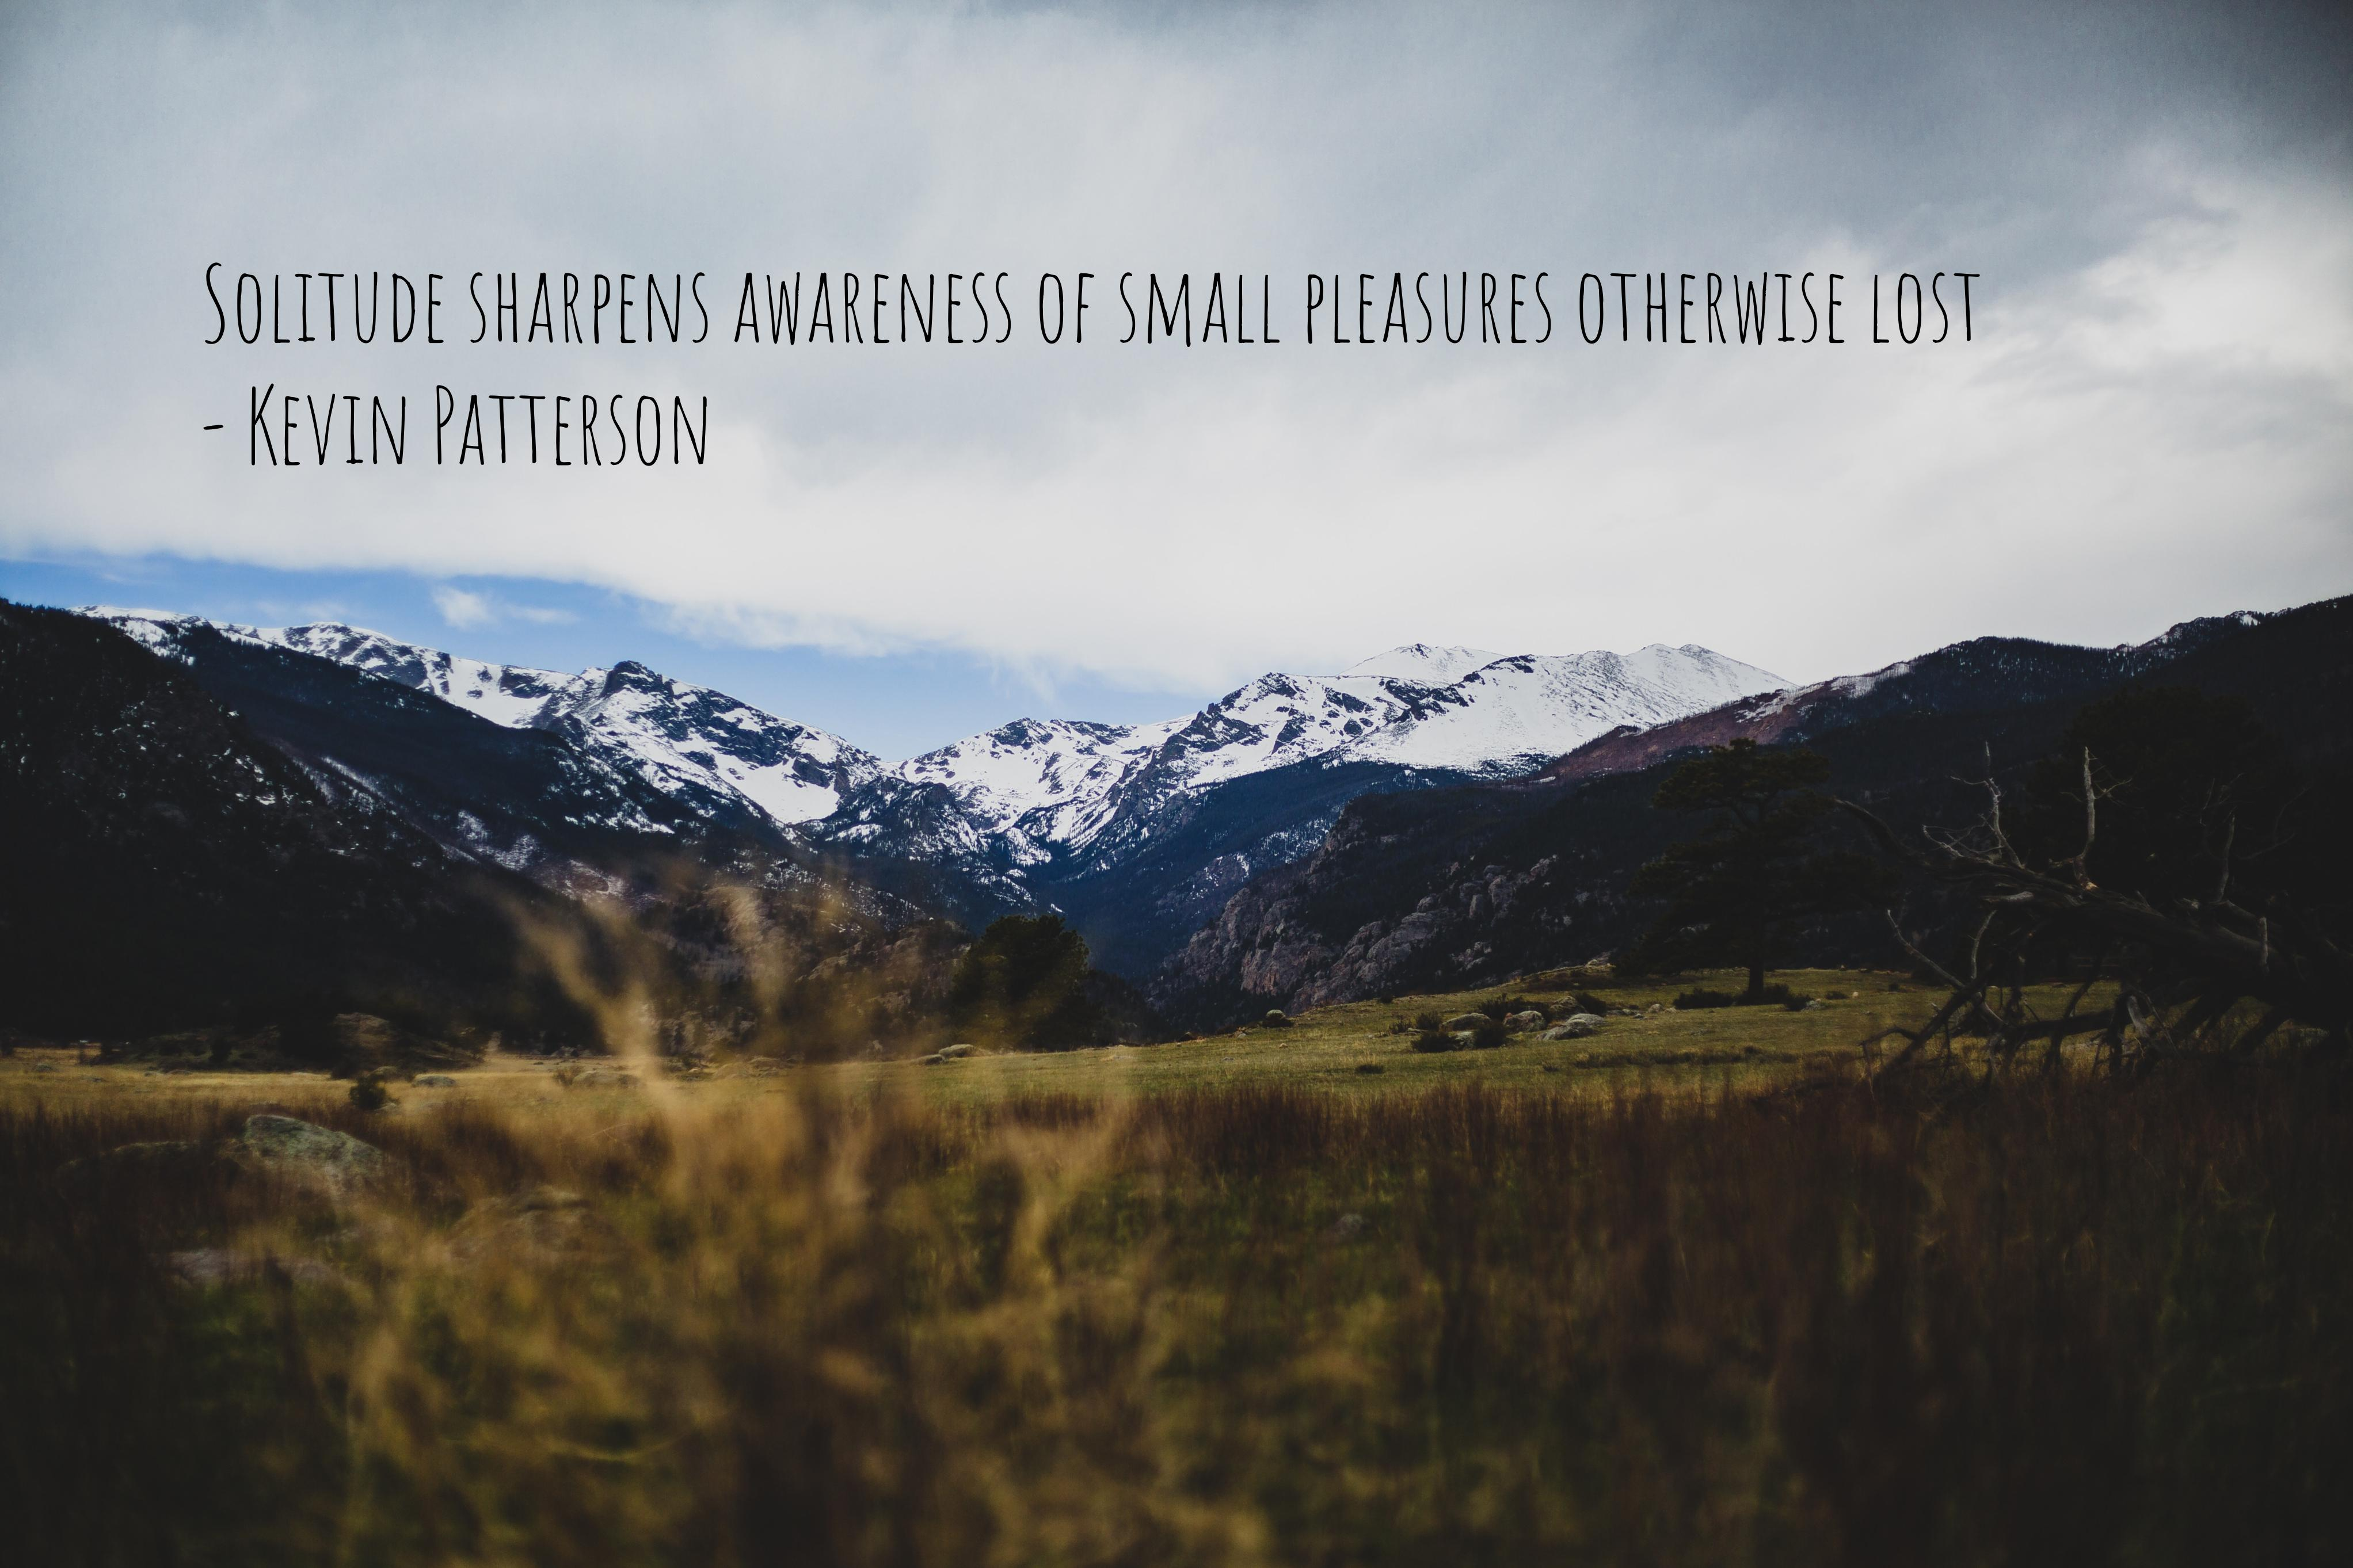 Solitude sharpens awareness of small pleasures otherwise lost – Kevin Patterson [4088 x 2725]